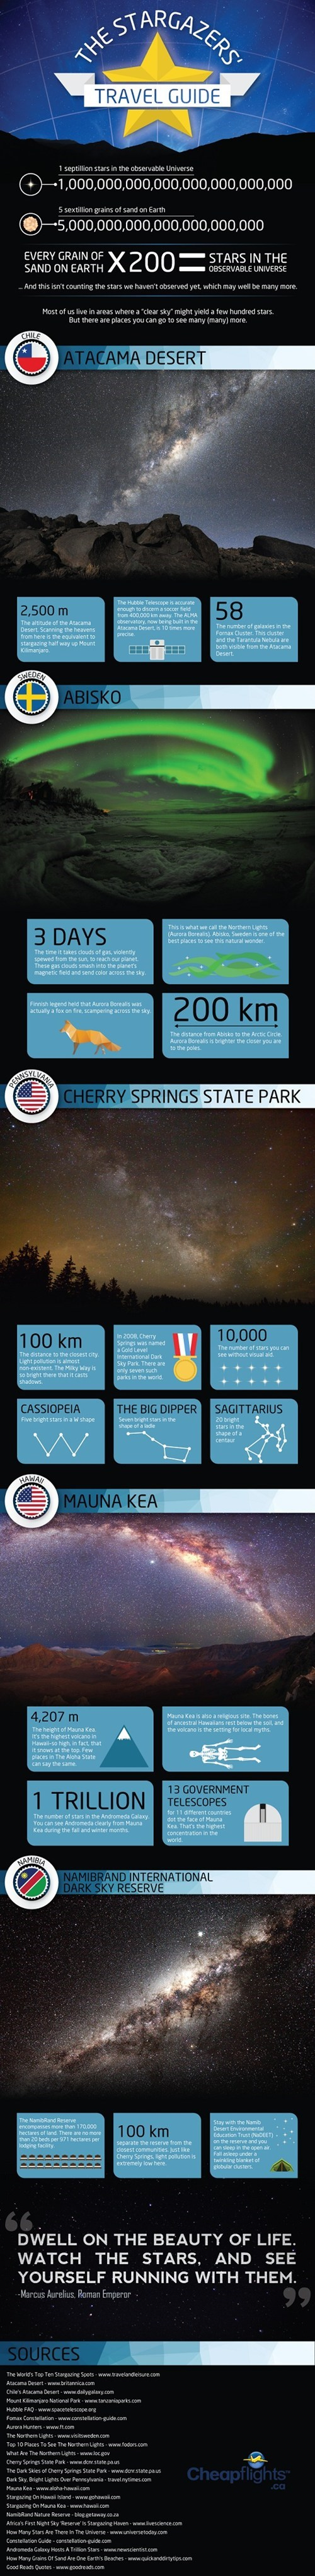 infographic stars Travel - 7889919232